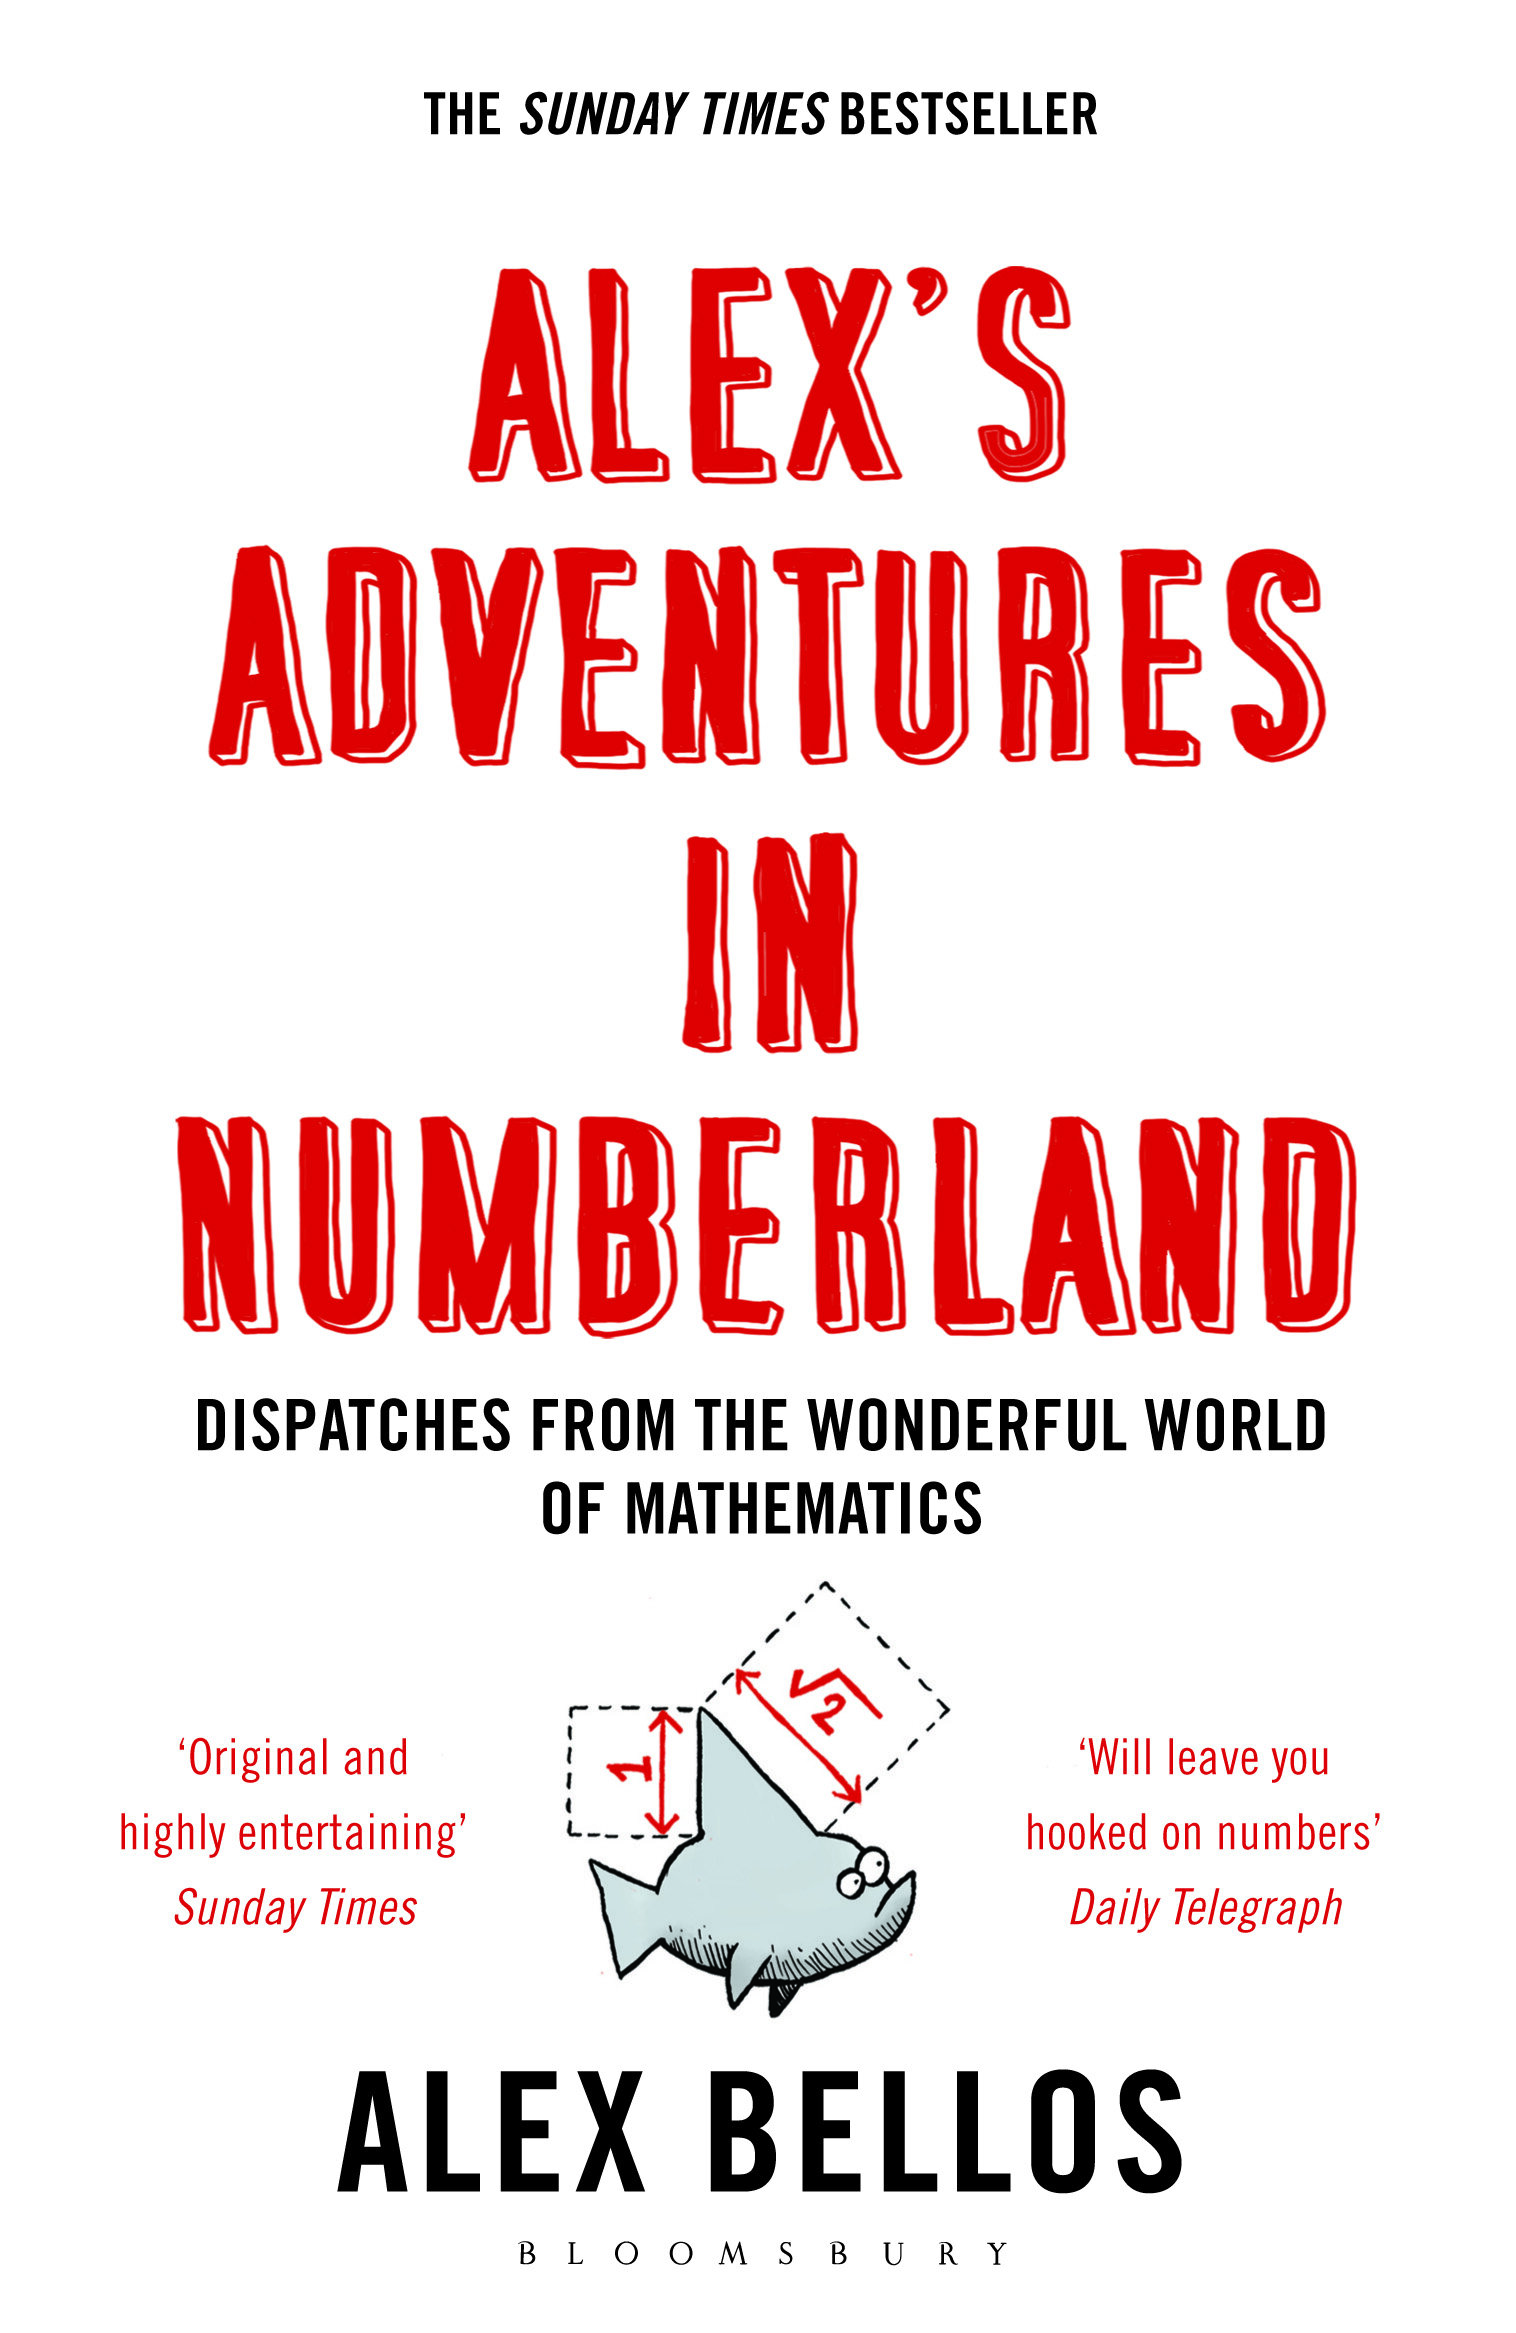 NUMBERLAND - A journalistic adventure around the world where I meet people whose lives connect to maths, Numberland is also a basic history of maths and a exposition of basic ideas including numerical cognition, calculation, pi, algebra, probability, statistics and infinity. Aimed at the general reader, it is suitable for GCSE students.Numberland was nominated for a British Book Award, and was shortlisted for the Samuel Johnson (now Baillie Gifford) Prize and the Royal Society Science Book Prize. In Italy it won the Peano Prize for maths book of the year and the Galileo Prize for science book of the year.